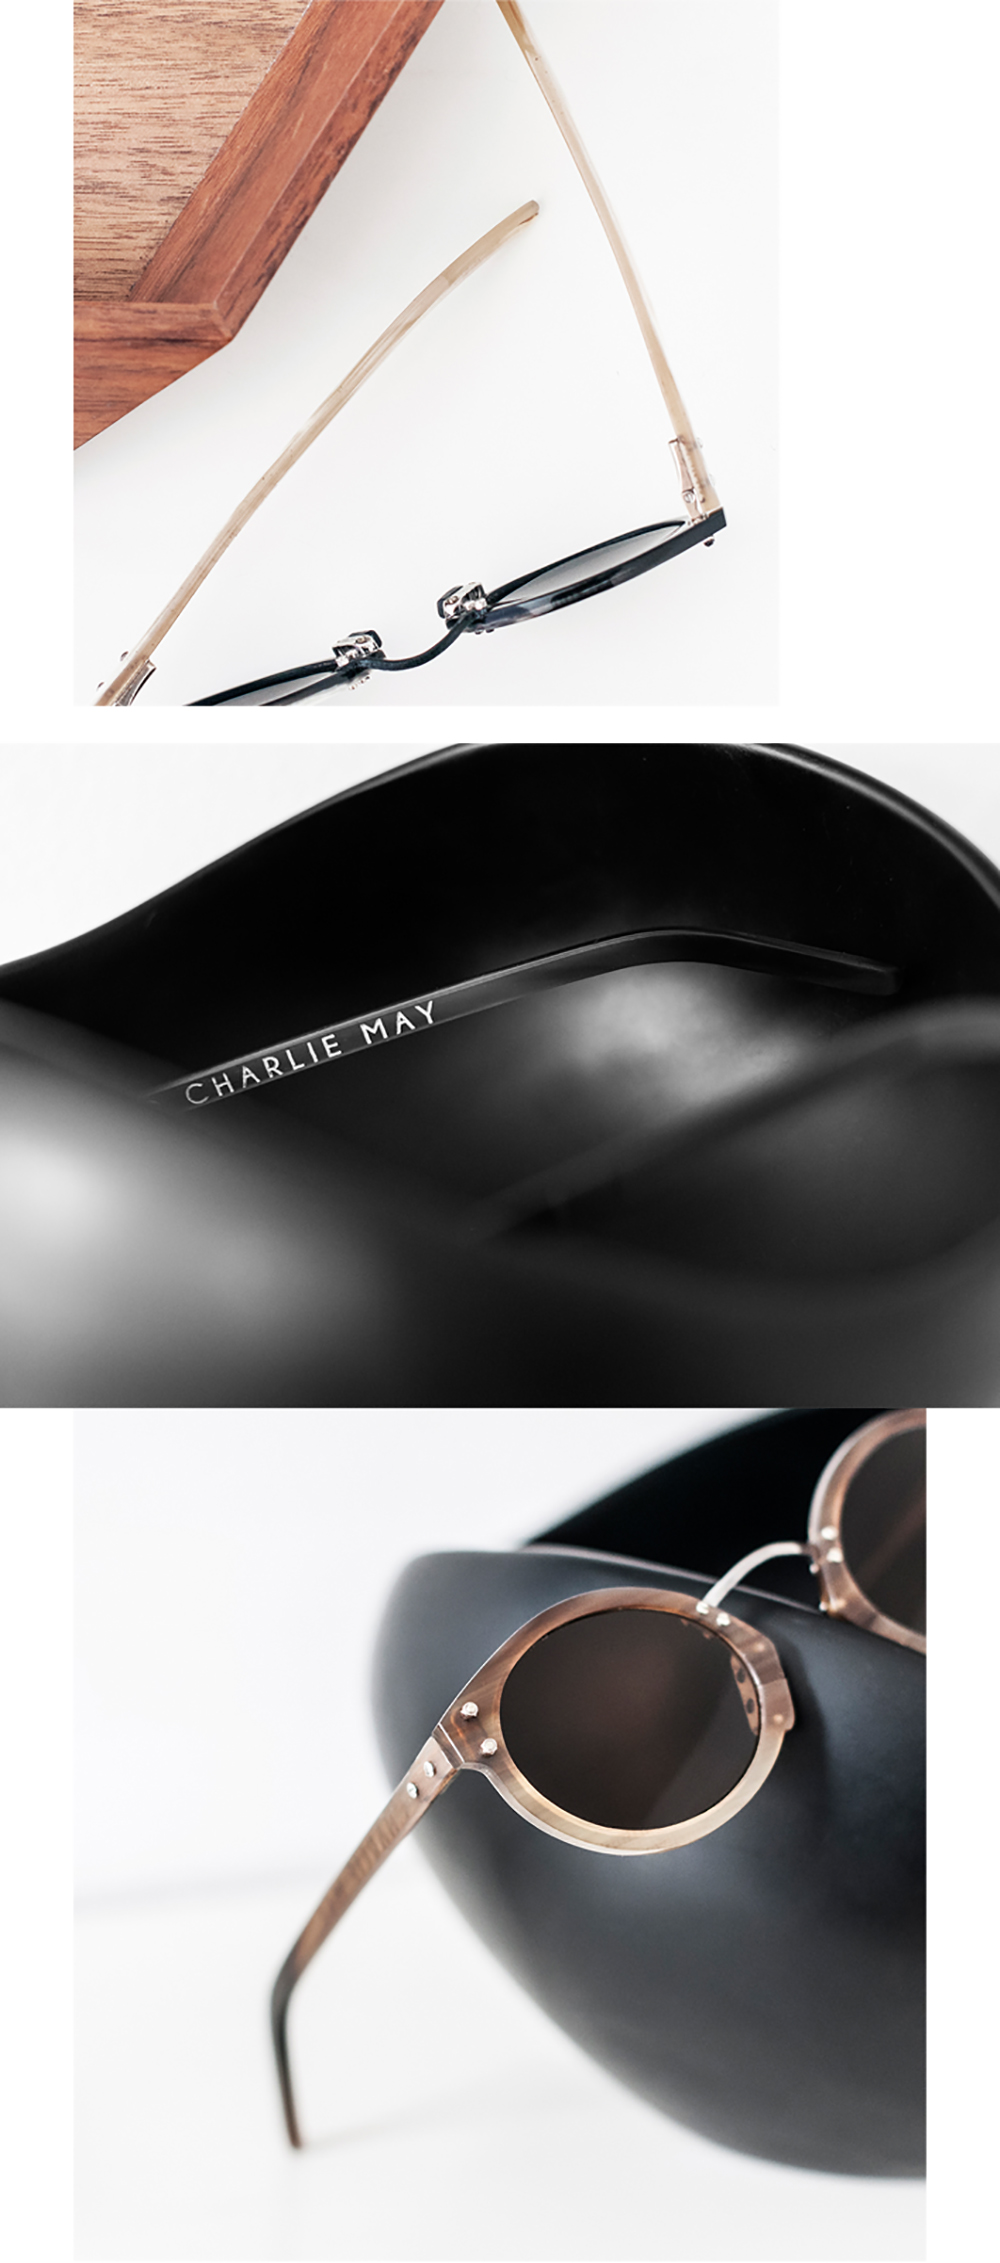 CHARLIE MAY  SS14 HORN SUNGLASSES by GUCEWICZ  PHOTOGRAPHY  IRINGO DEMETER